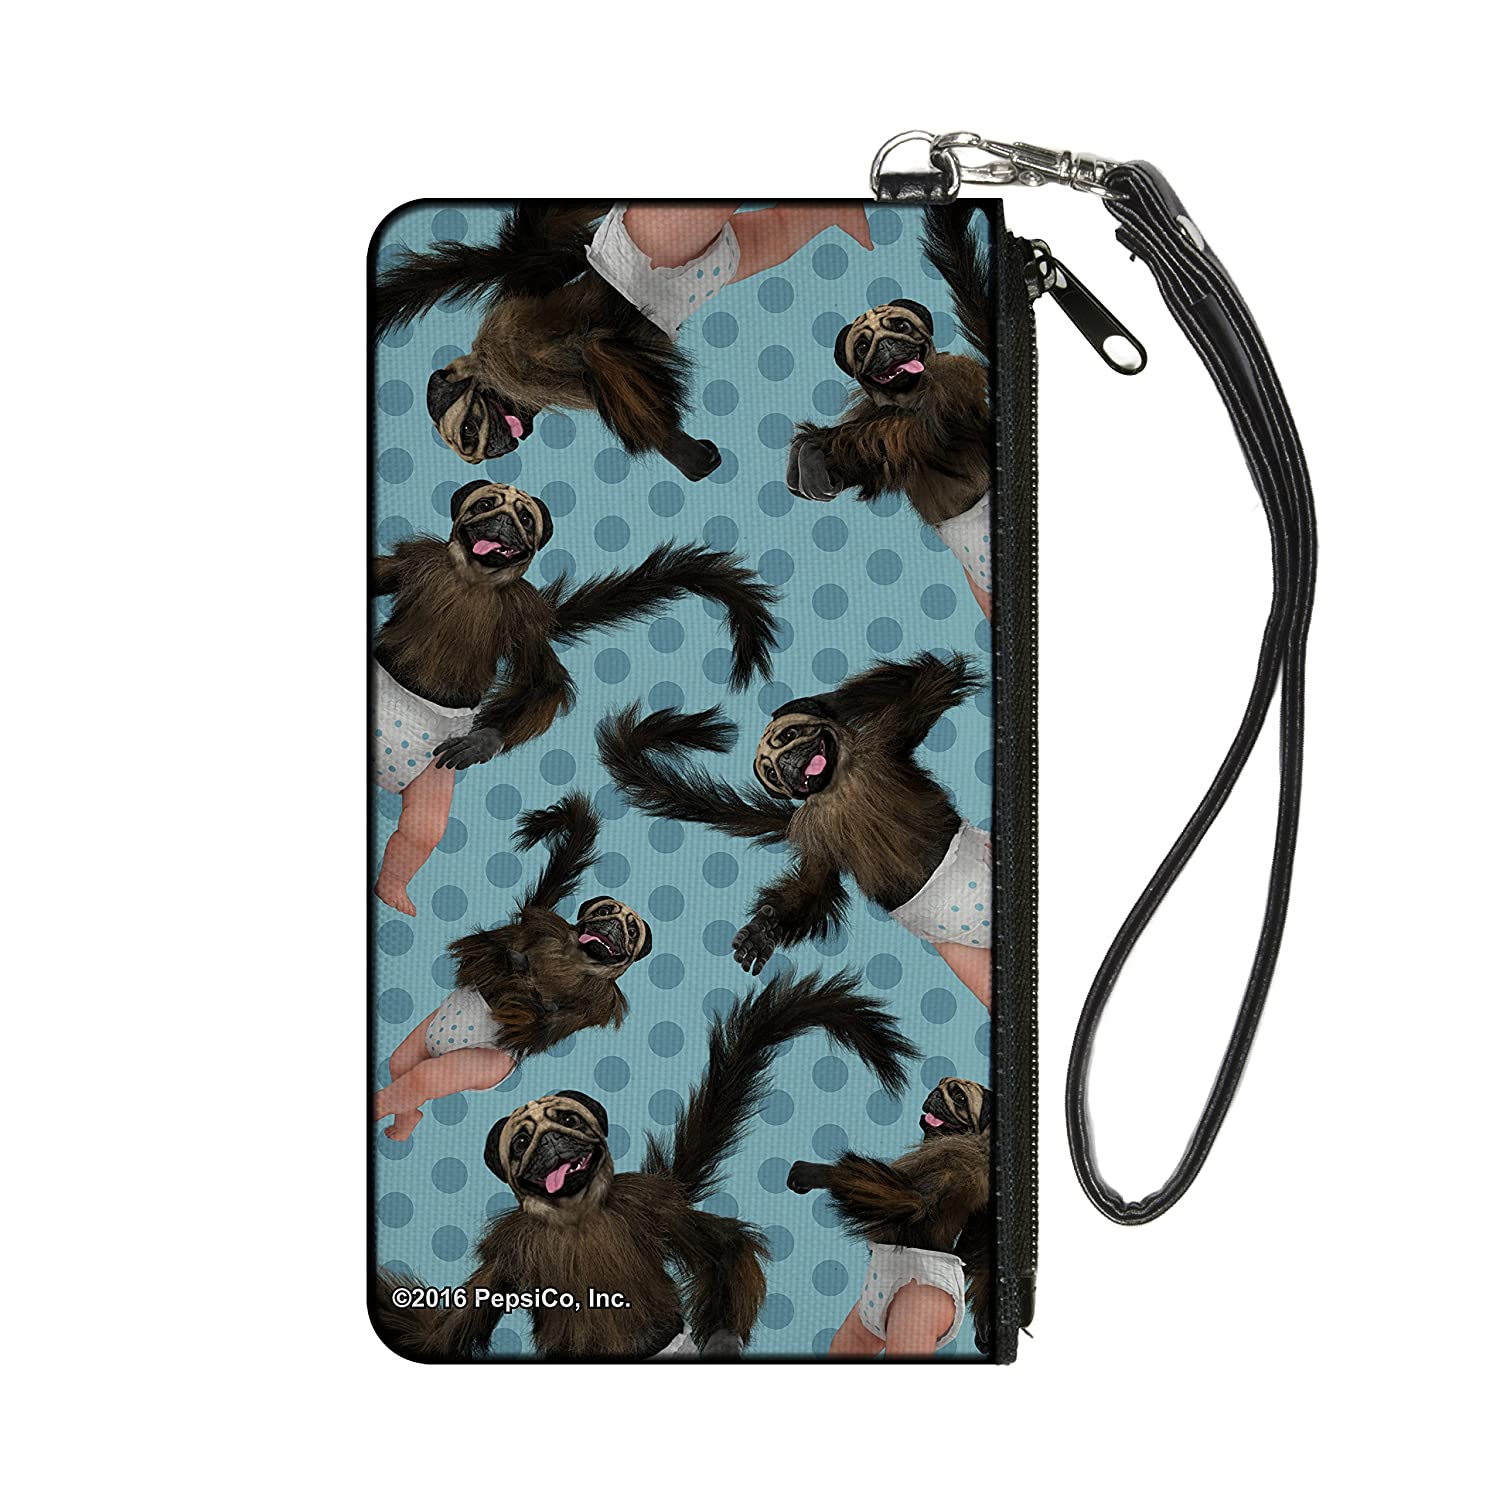 Puppymonkeybaby Poses Scattered Polka Dots Turquoise Blues Canvas Zipper Canvas Zipper Wallet Buckle-Down CZW-SM-PMBH